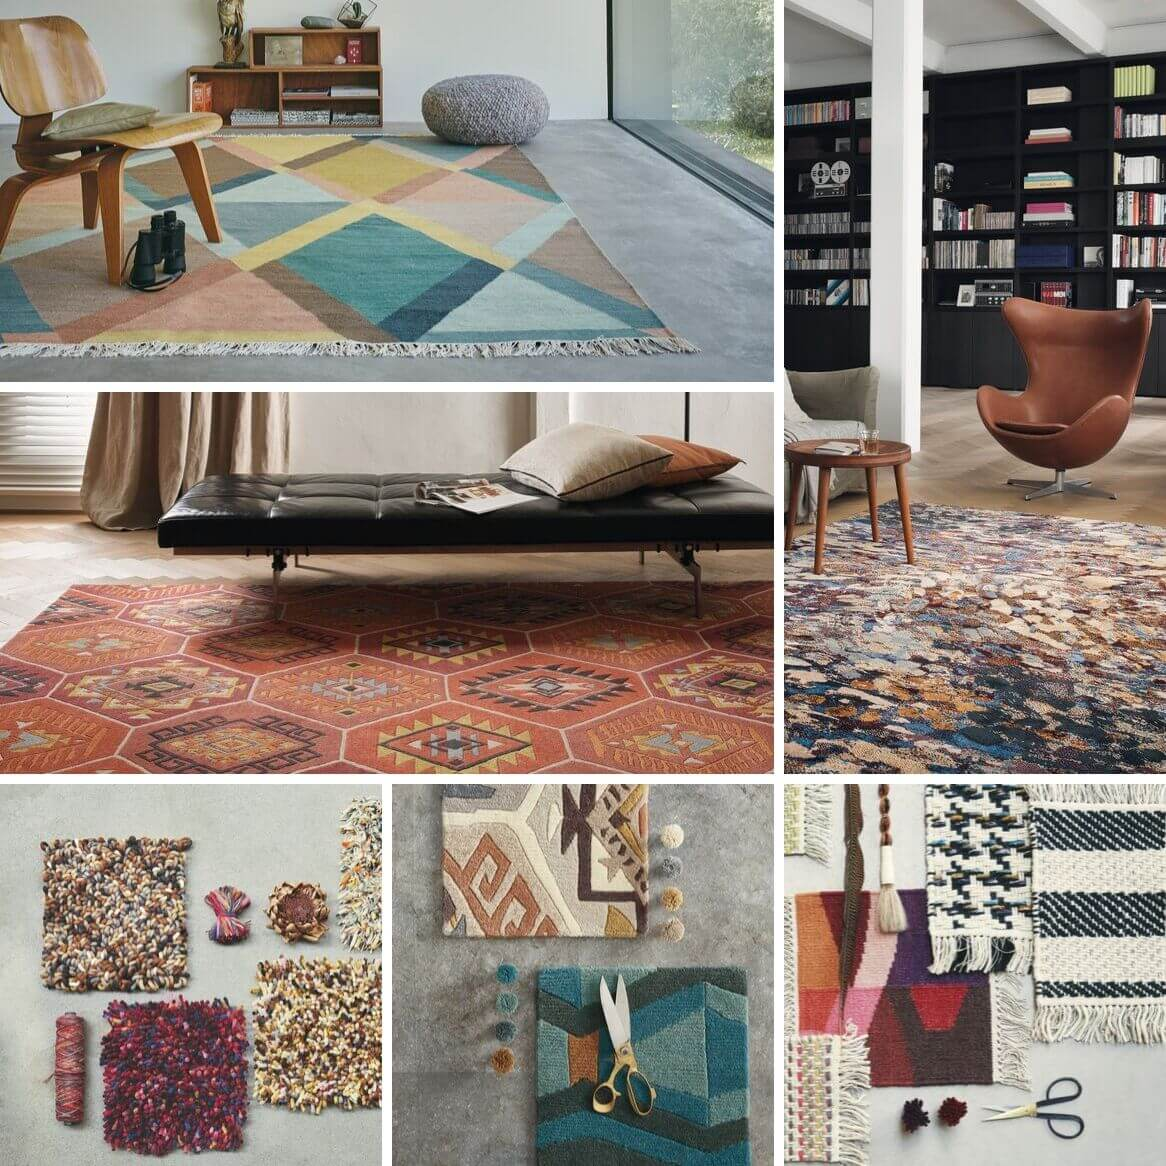 brink and campman design hollandais zeeblog zeeloft